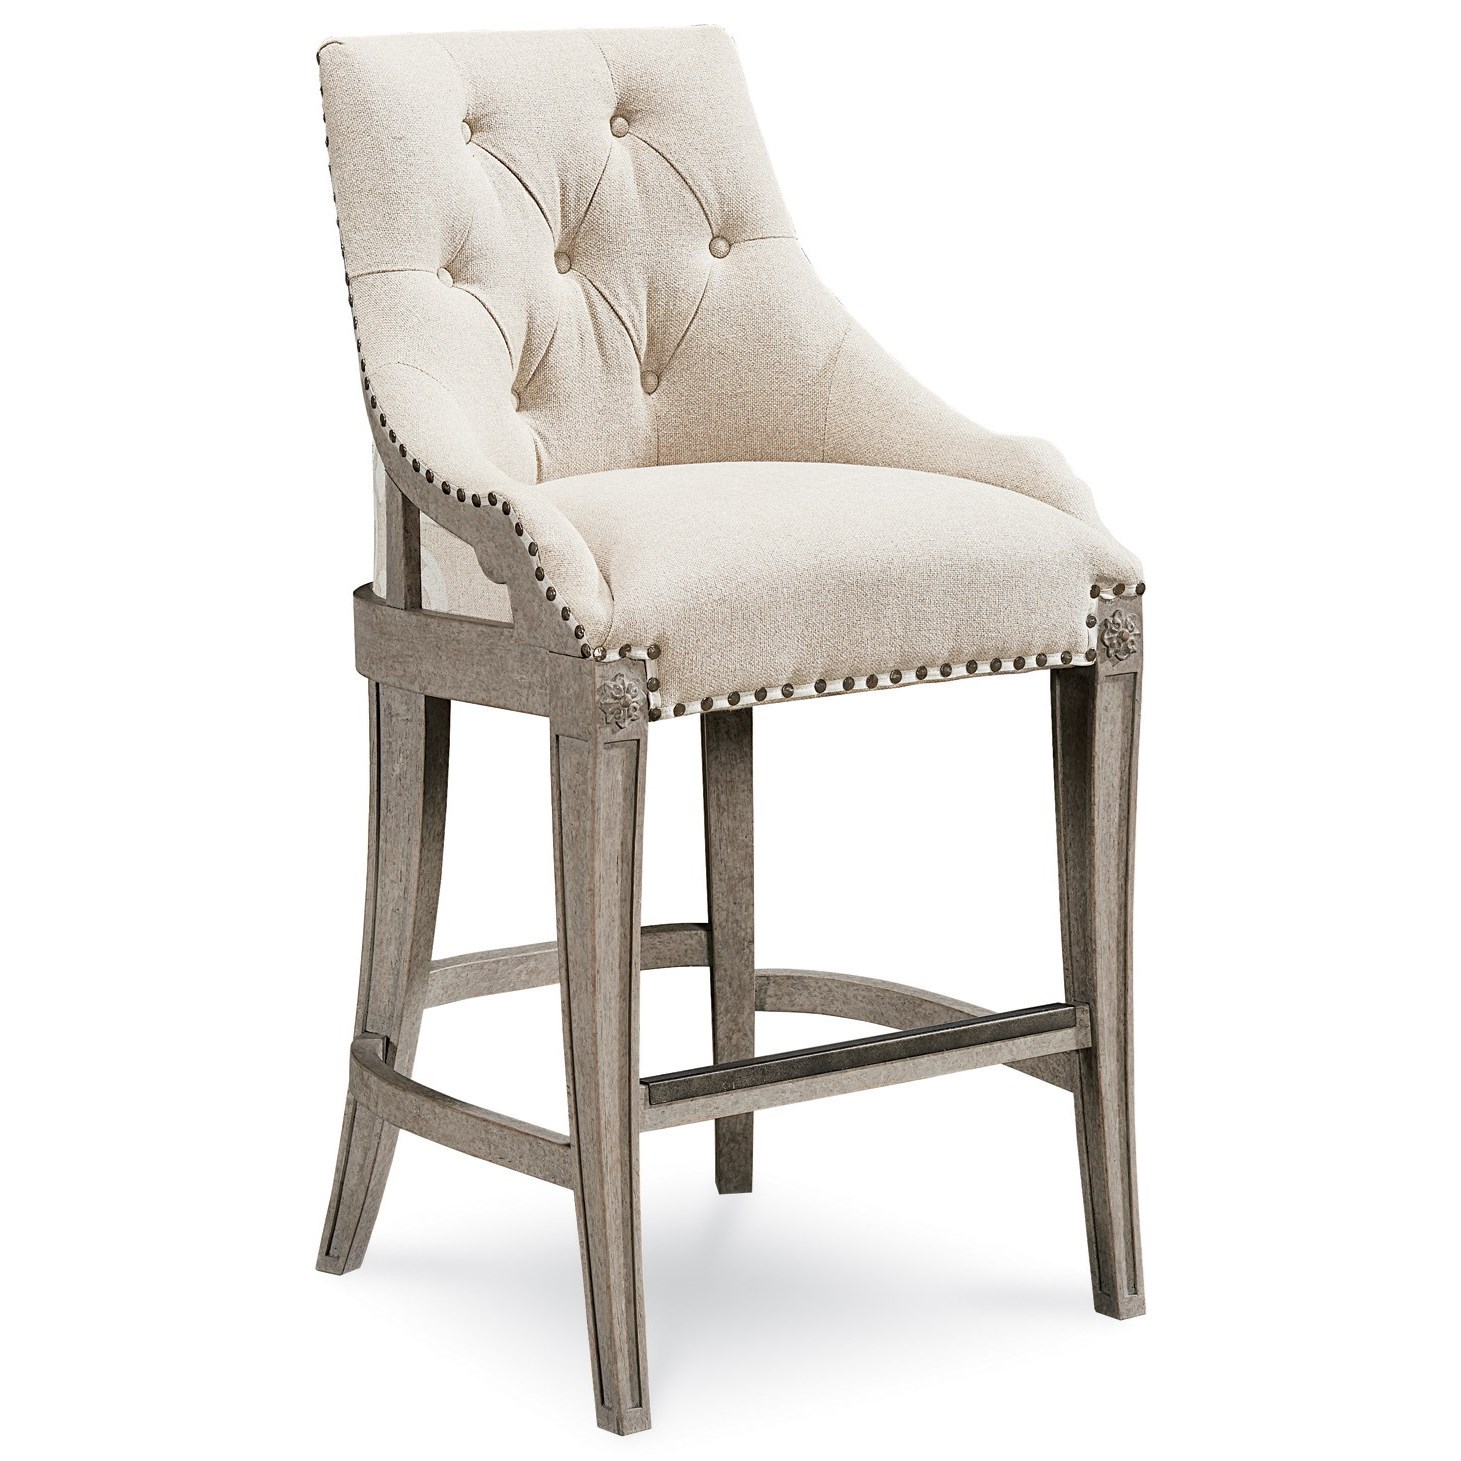 Arch Salvage Reeves Bar Chair by A.R.T. Furniture Inc at Baer's Furniture